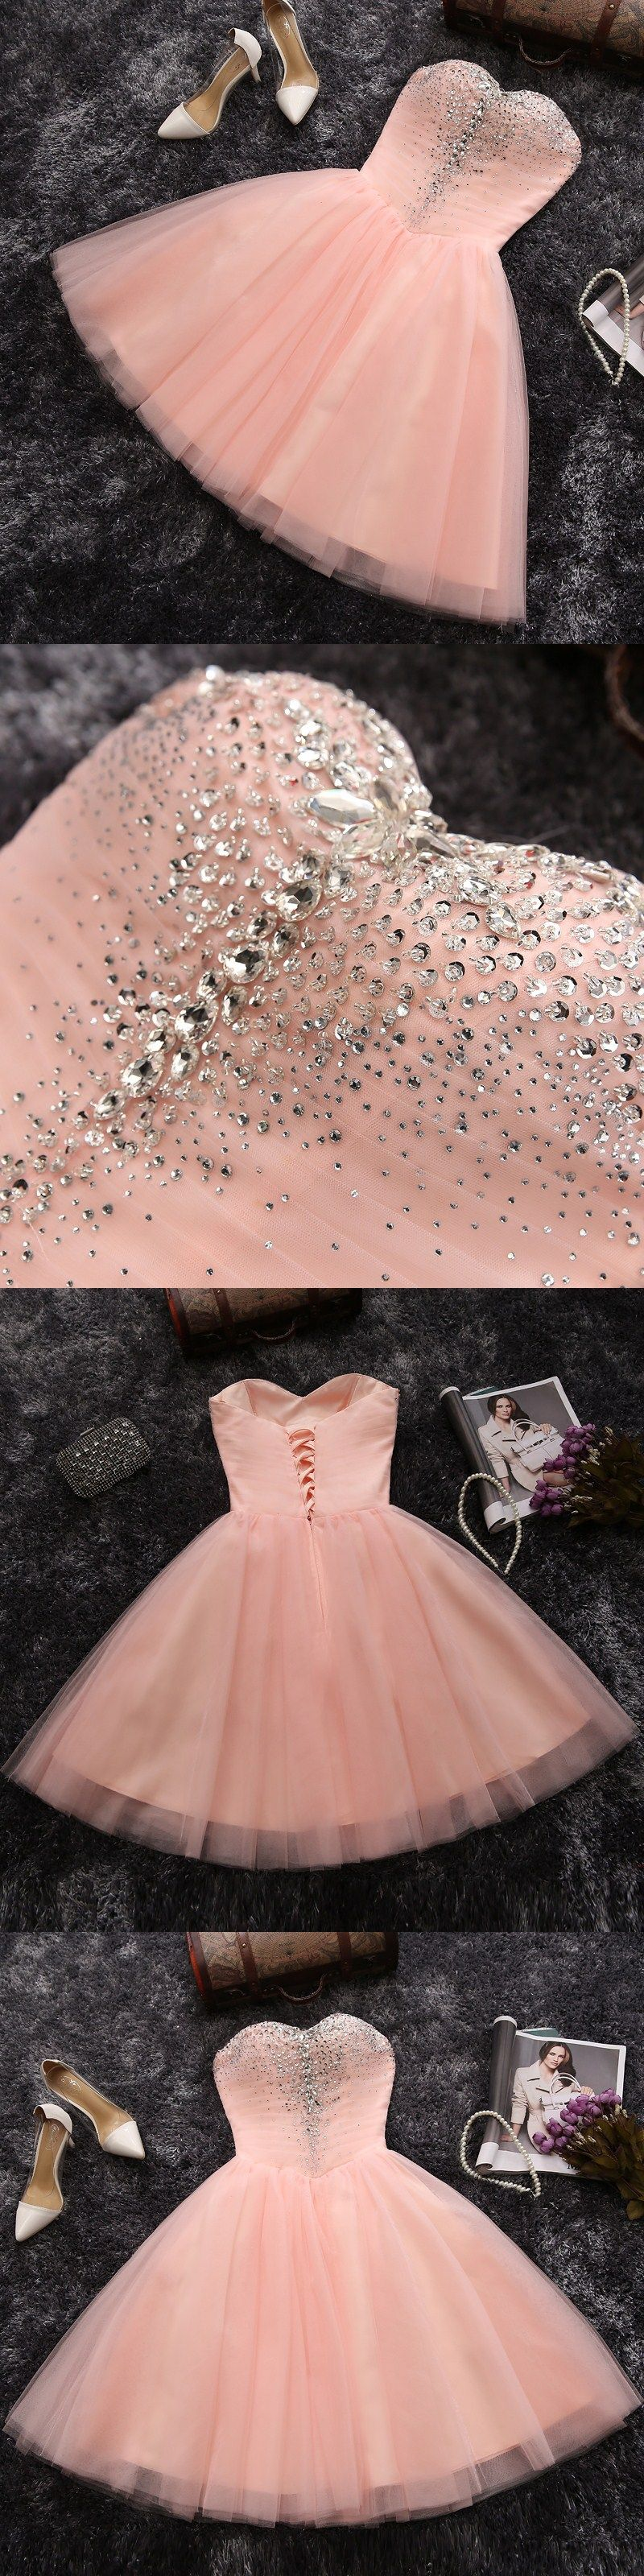 Strapless Sweetheart neck Blush Pink Homecoming Dresses,Short Prom ...